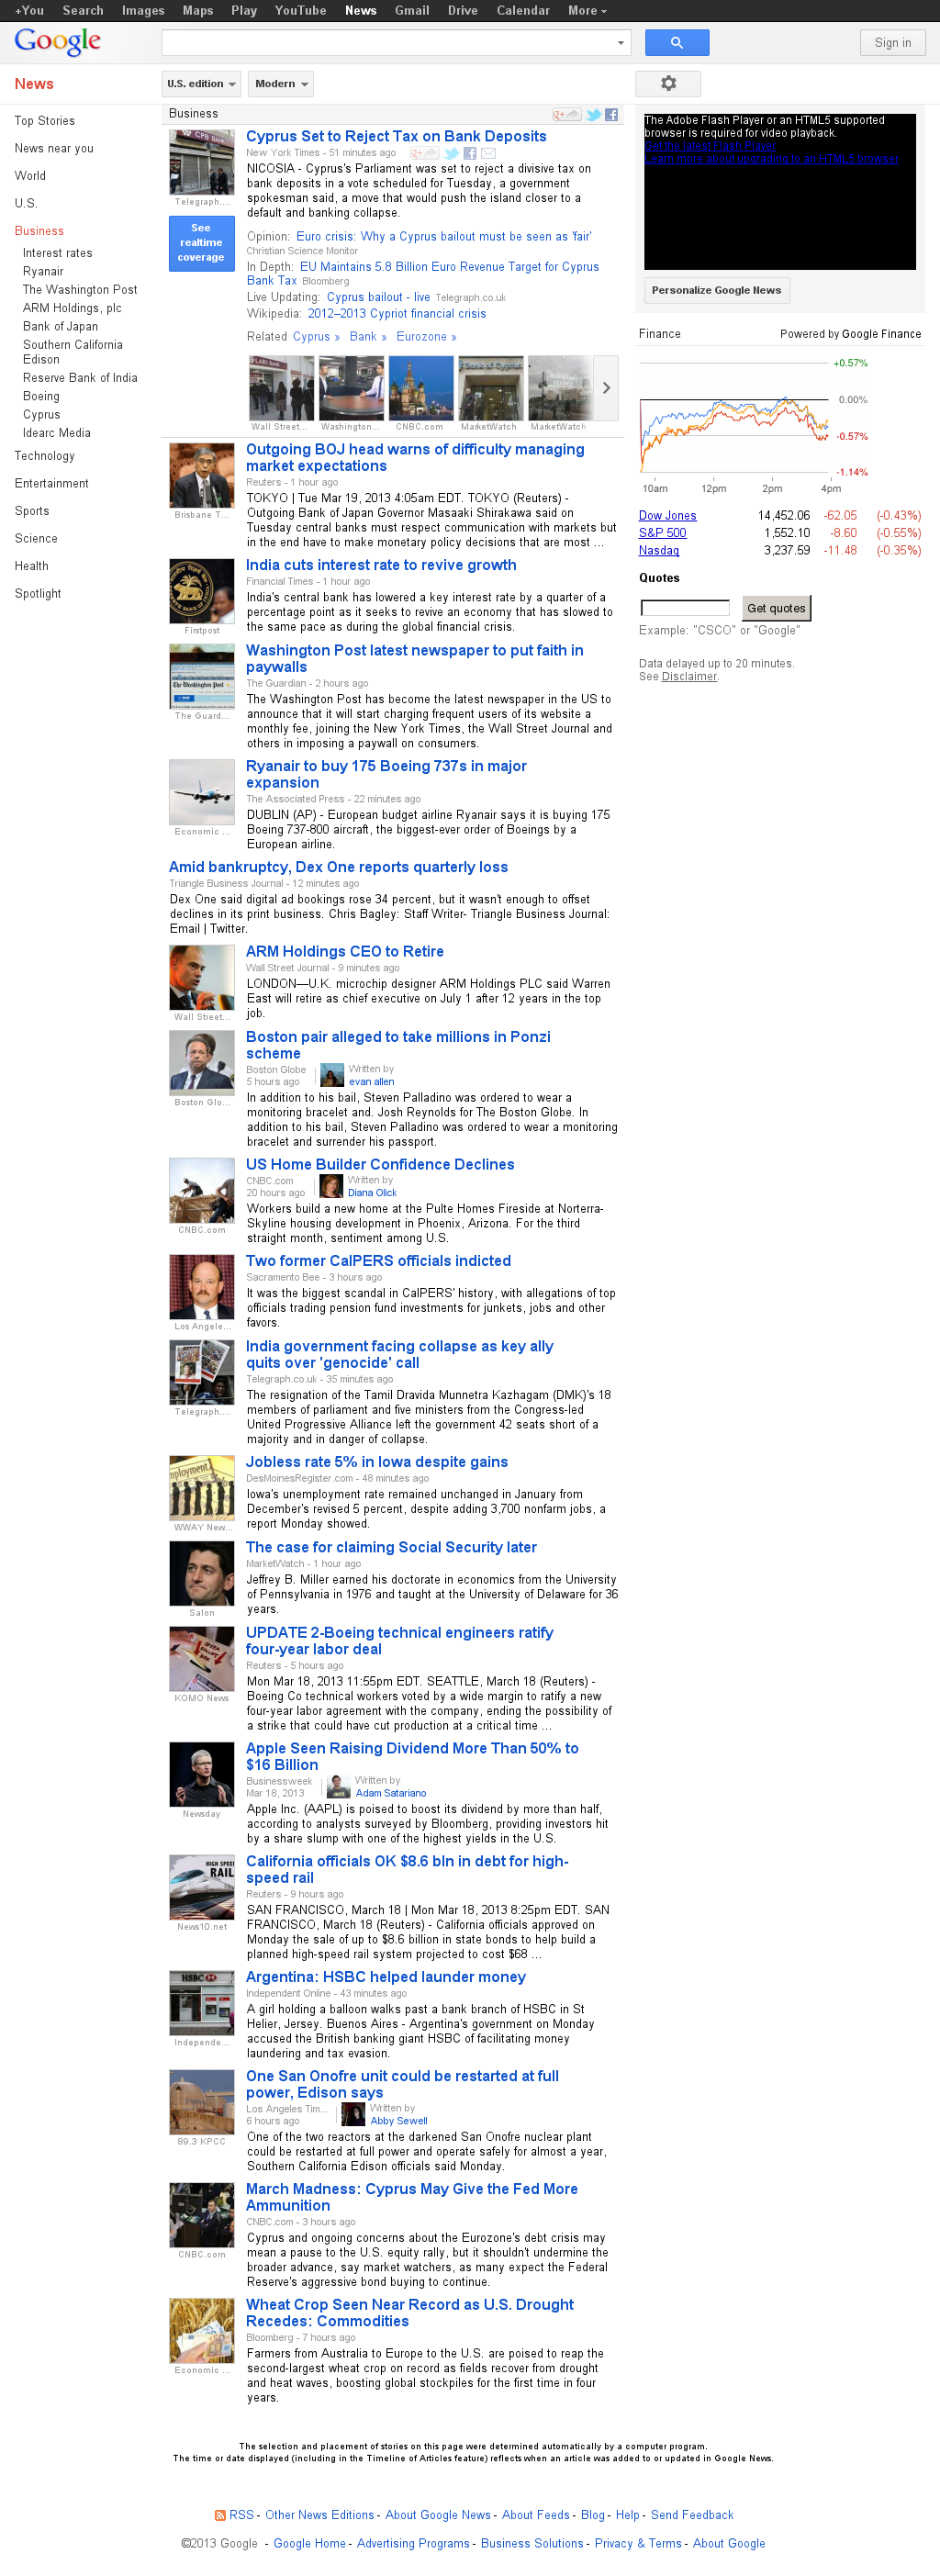 Google News: Business at Tuesday March 19, 2013, 10:10 a.m. UTC